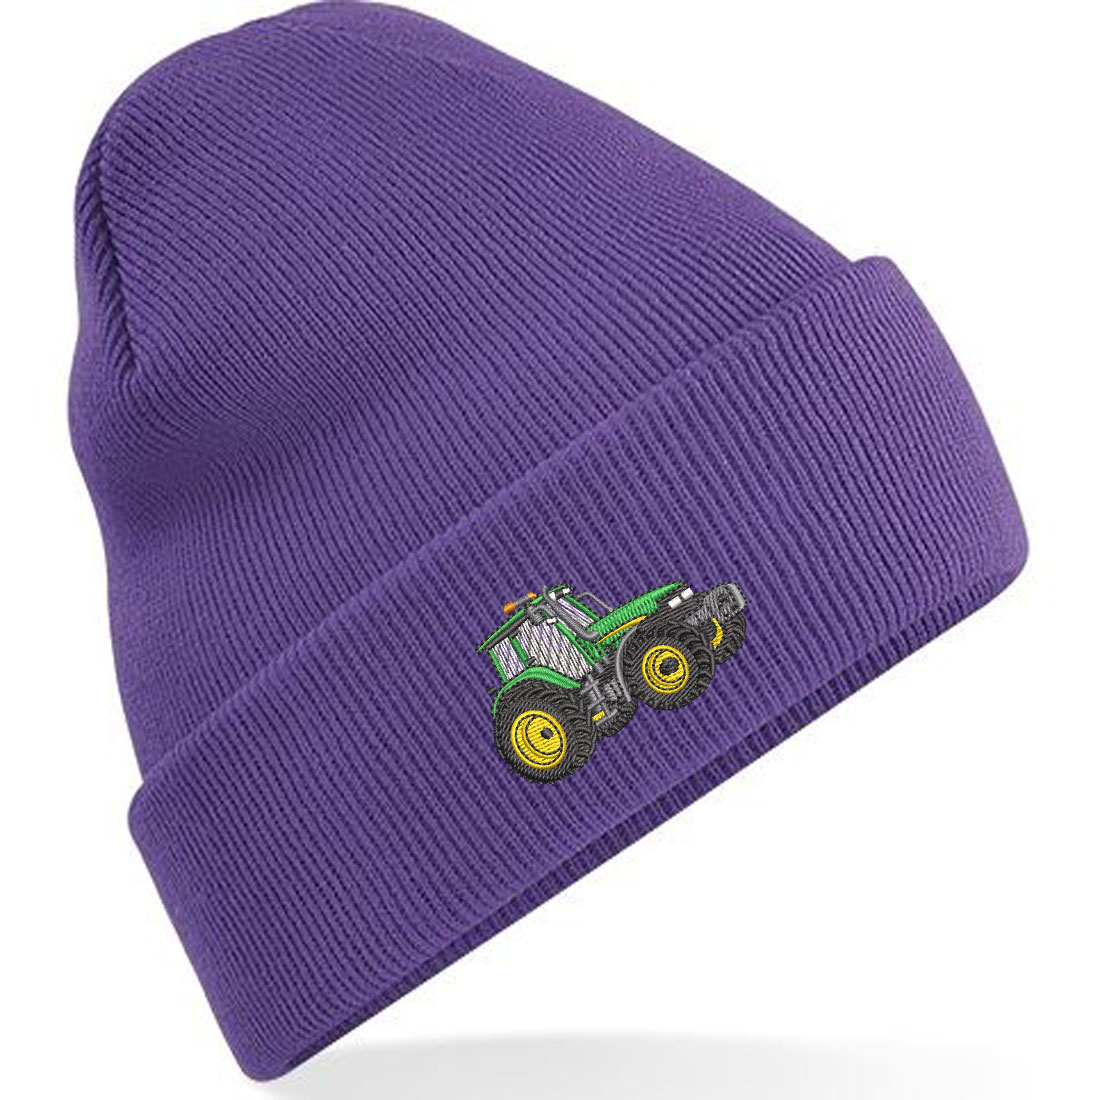 Embroidered Green Tractor Adults Unisex Beanie/Hat with Cuff .